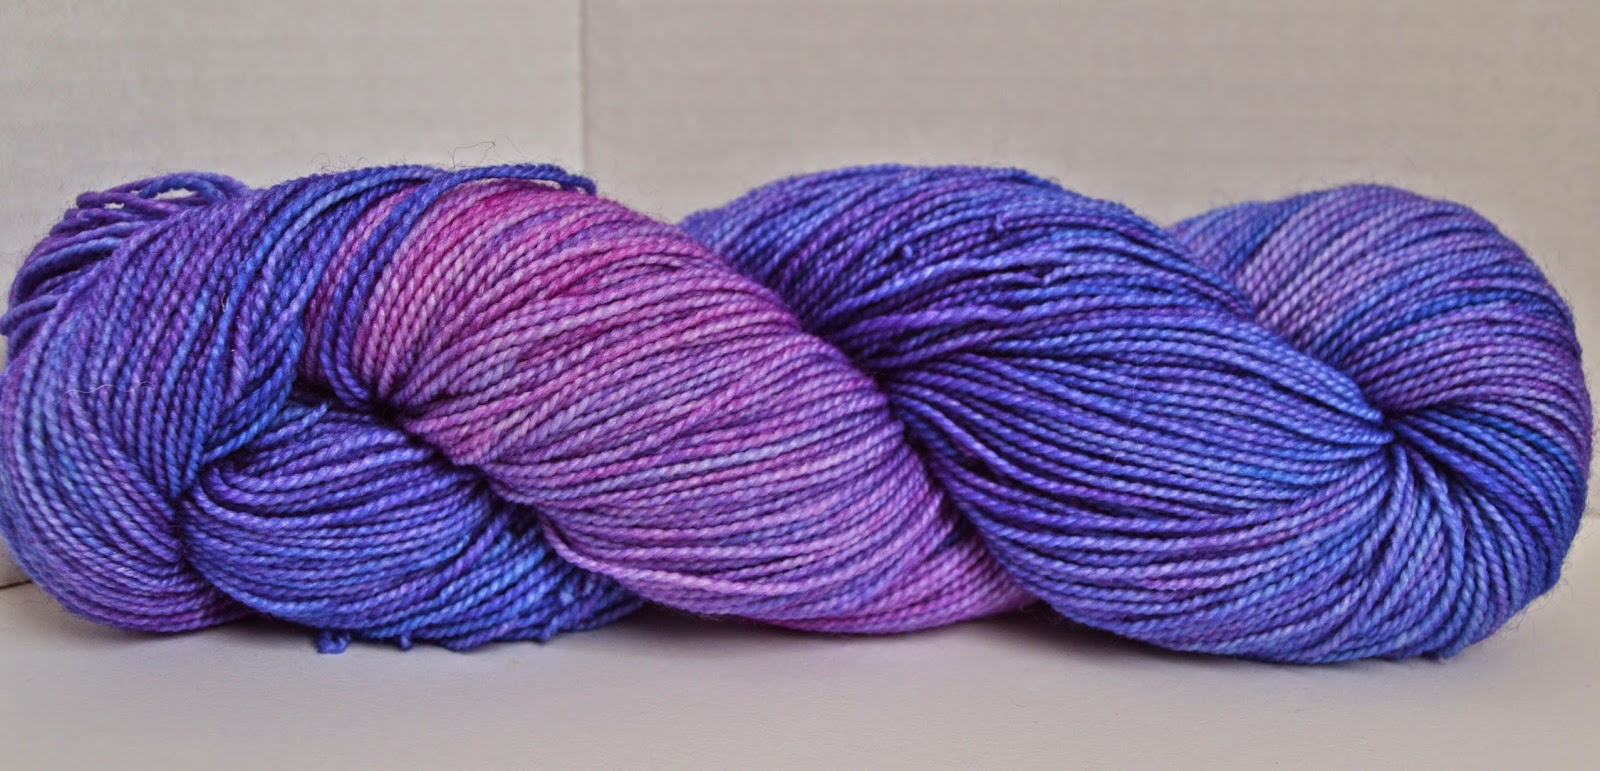 fingering weight yarn http://jeanniegrayknits.blogspot.com/